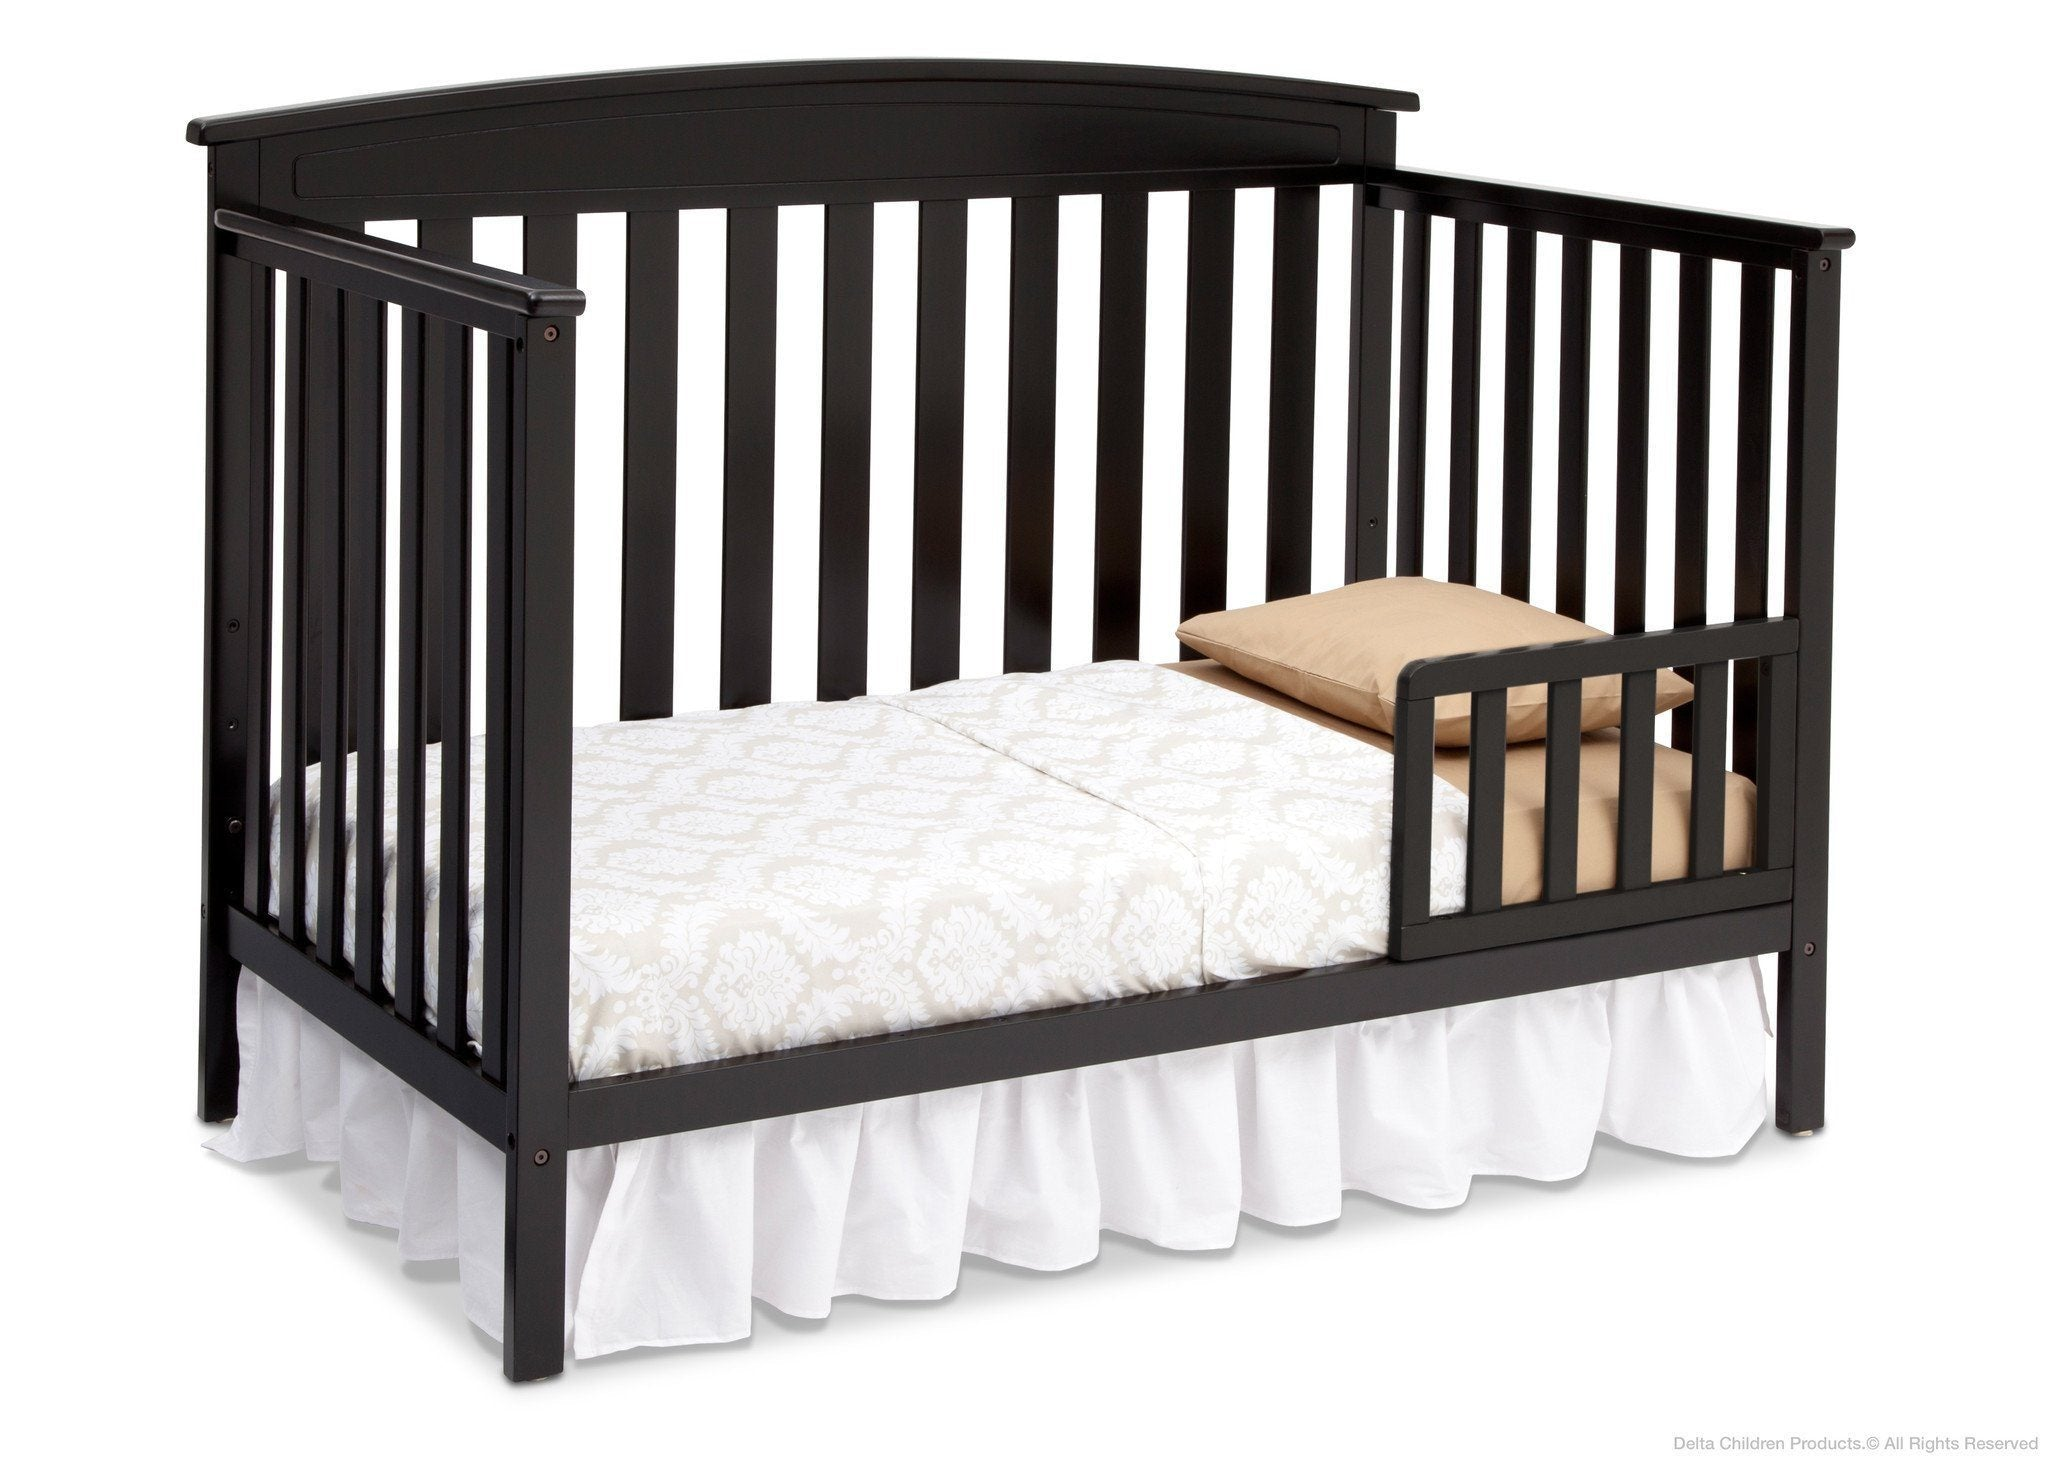 silhouette images baby to best mixture airy of features a clermont create convertible crib nurseries children solid pinterest feel slats and on timeless style delta sleigh yet making skinny from wide deltachildren cribs bed